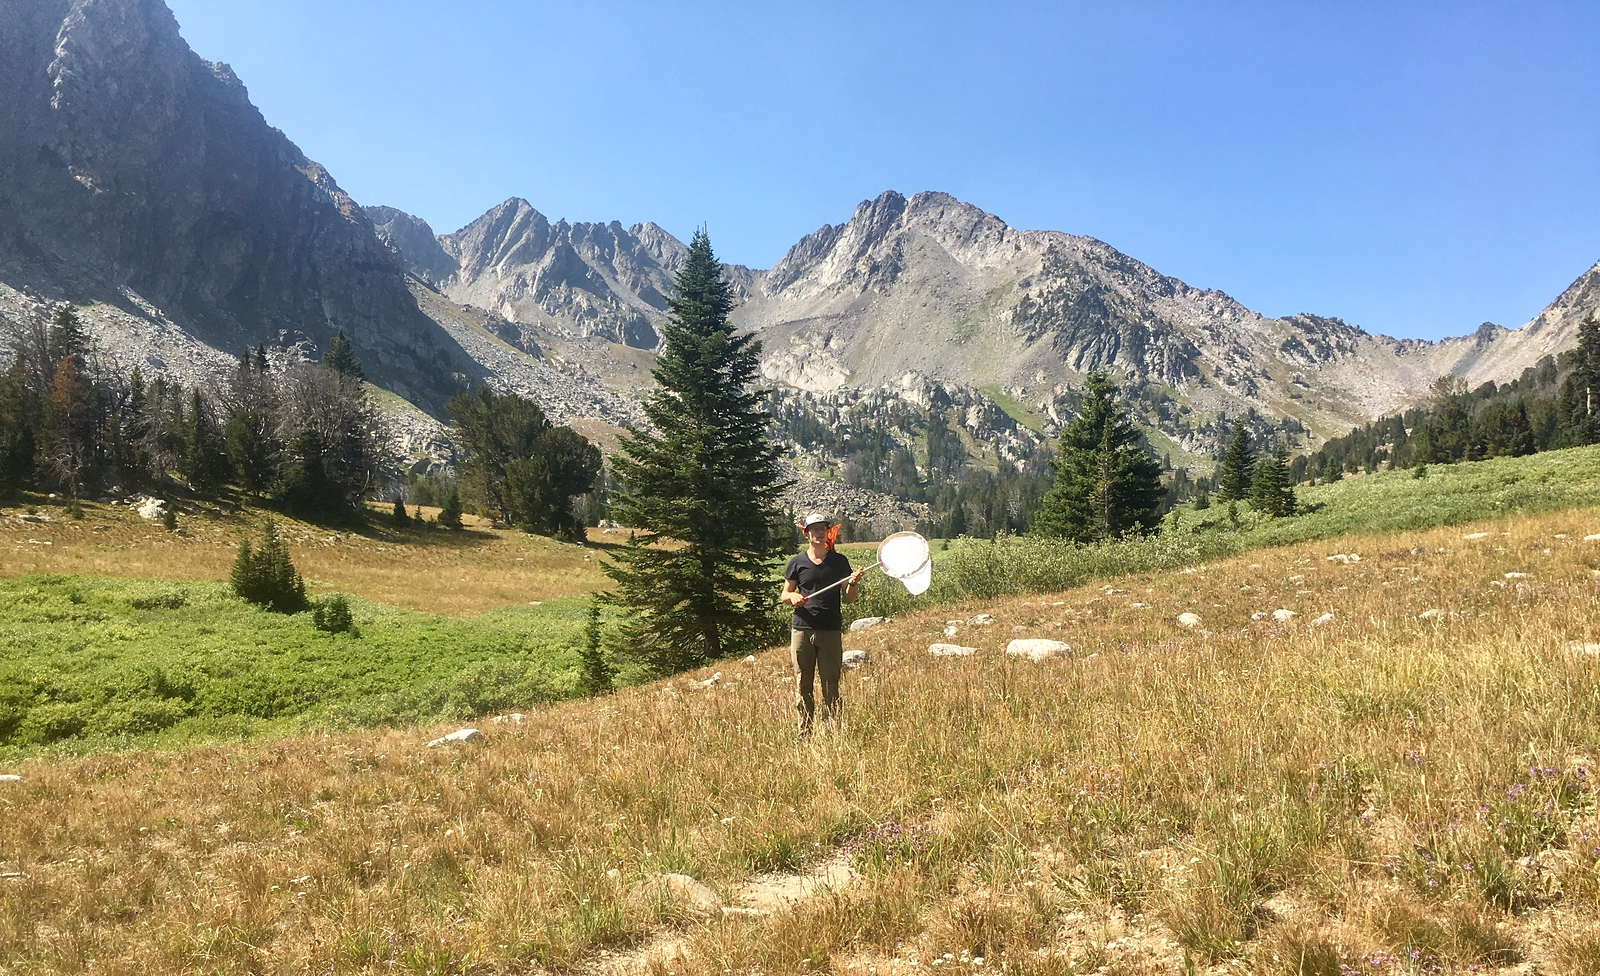 Searching for butterflies in Bear Basin, Montana PC: Emma Bode